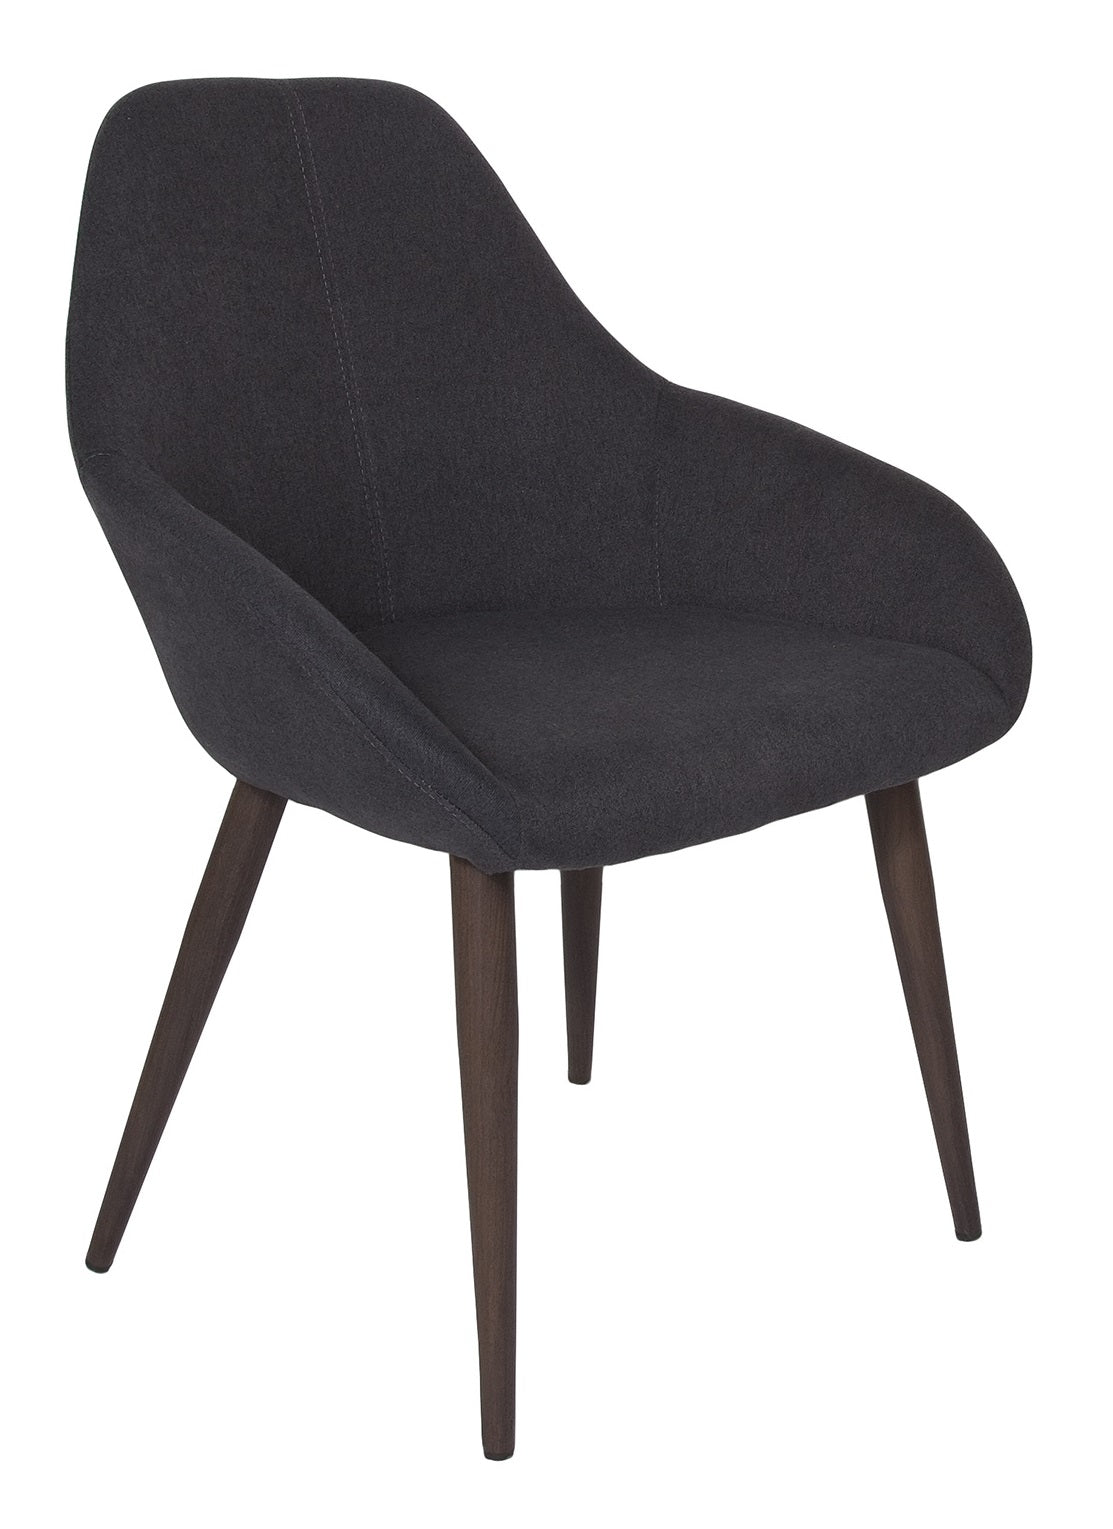 Tina Chair – Graphite / Walnut